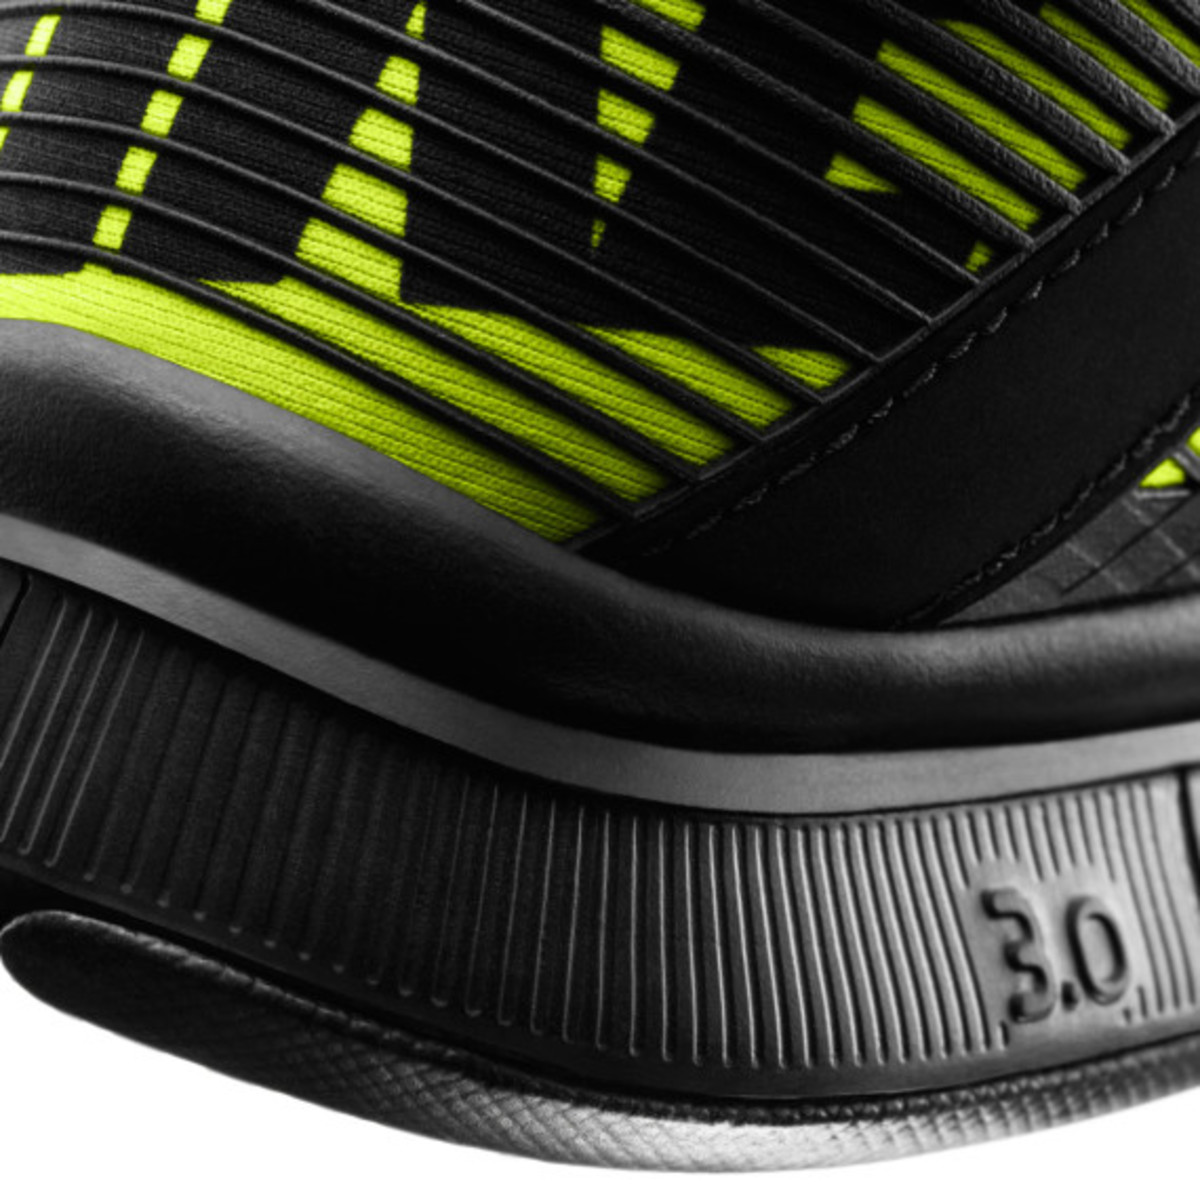 Nike Free Trainer 3.0 Mid Shield - Officially Unveiled - 7